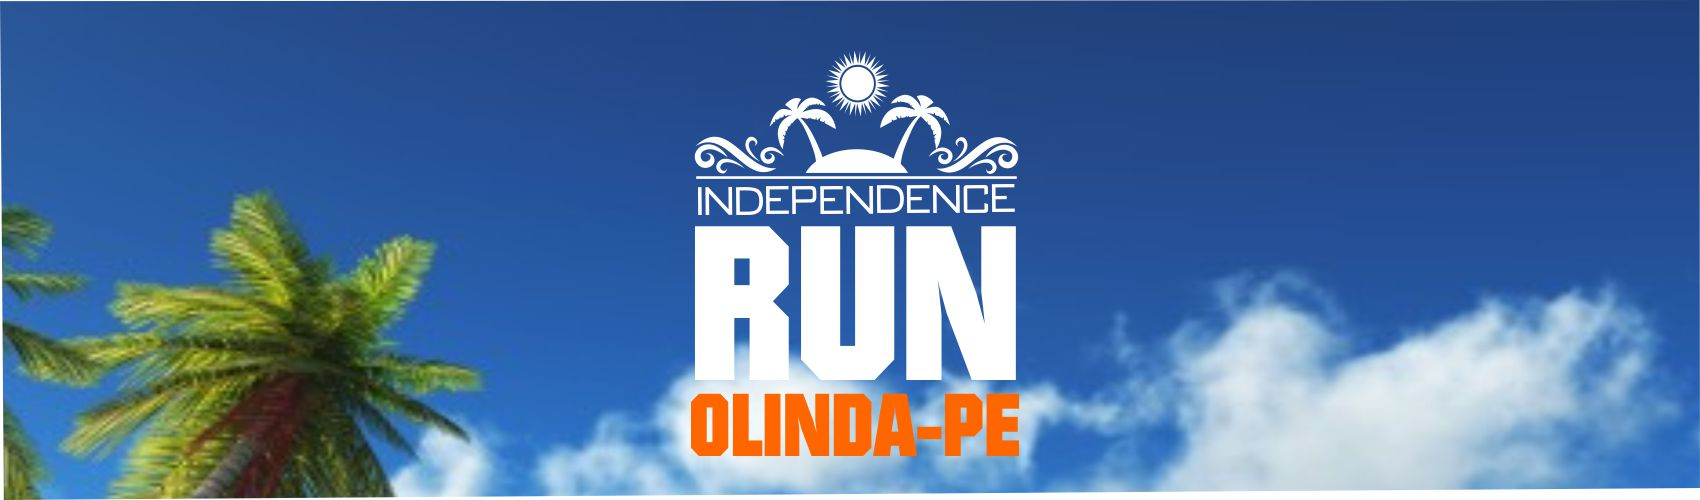 INDEPENDENCE RUN